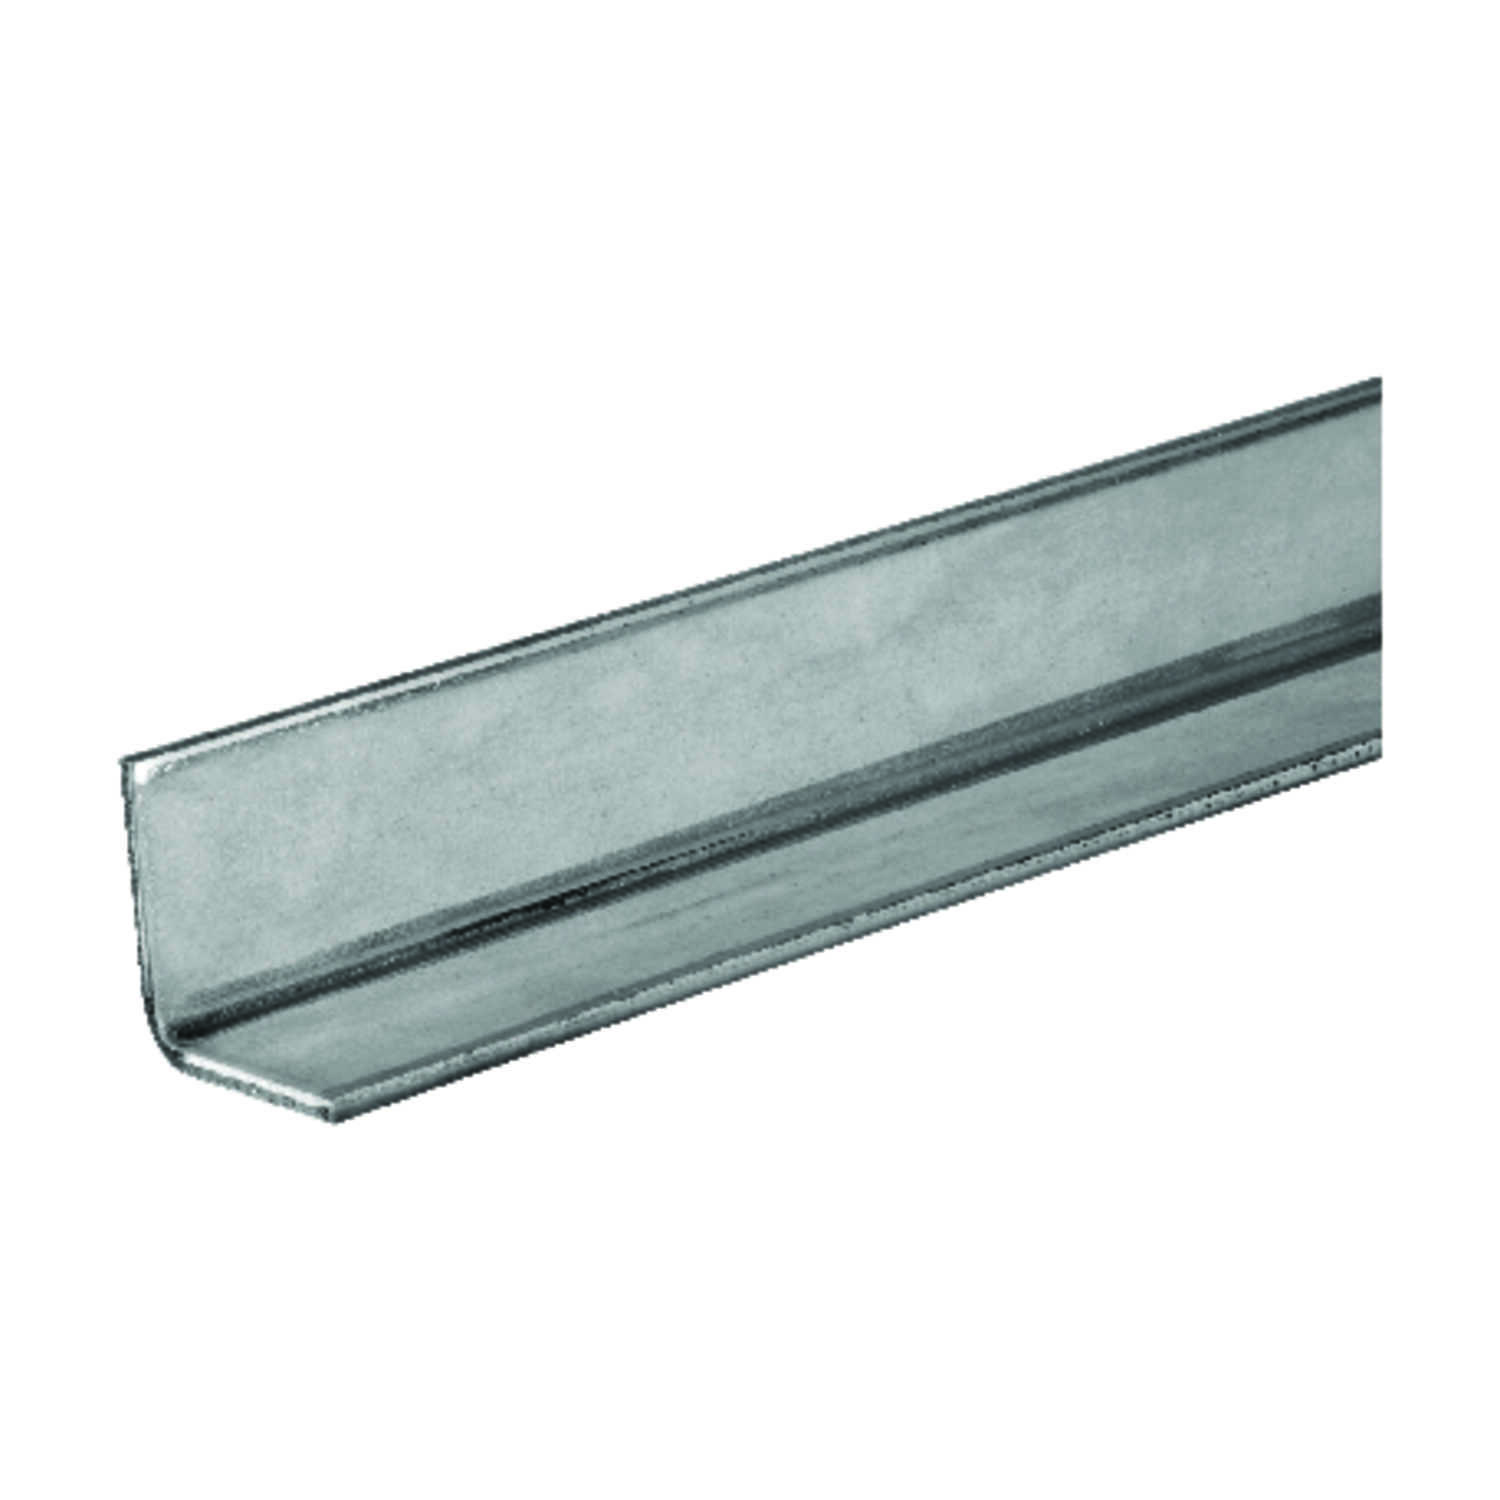 Boltmaster  1.25 in. H x 1.25 in. H x 36 in. L Zinc Plated Steel  Angle